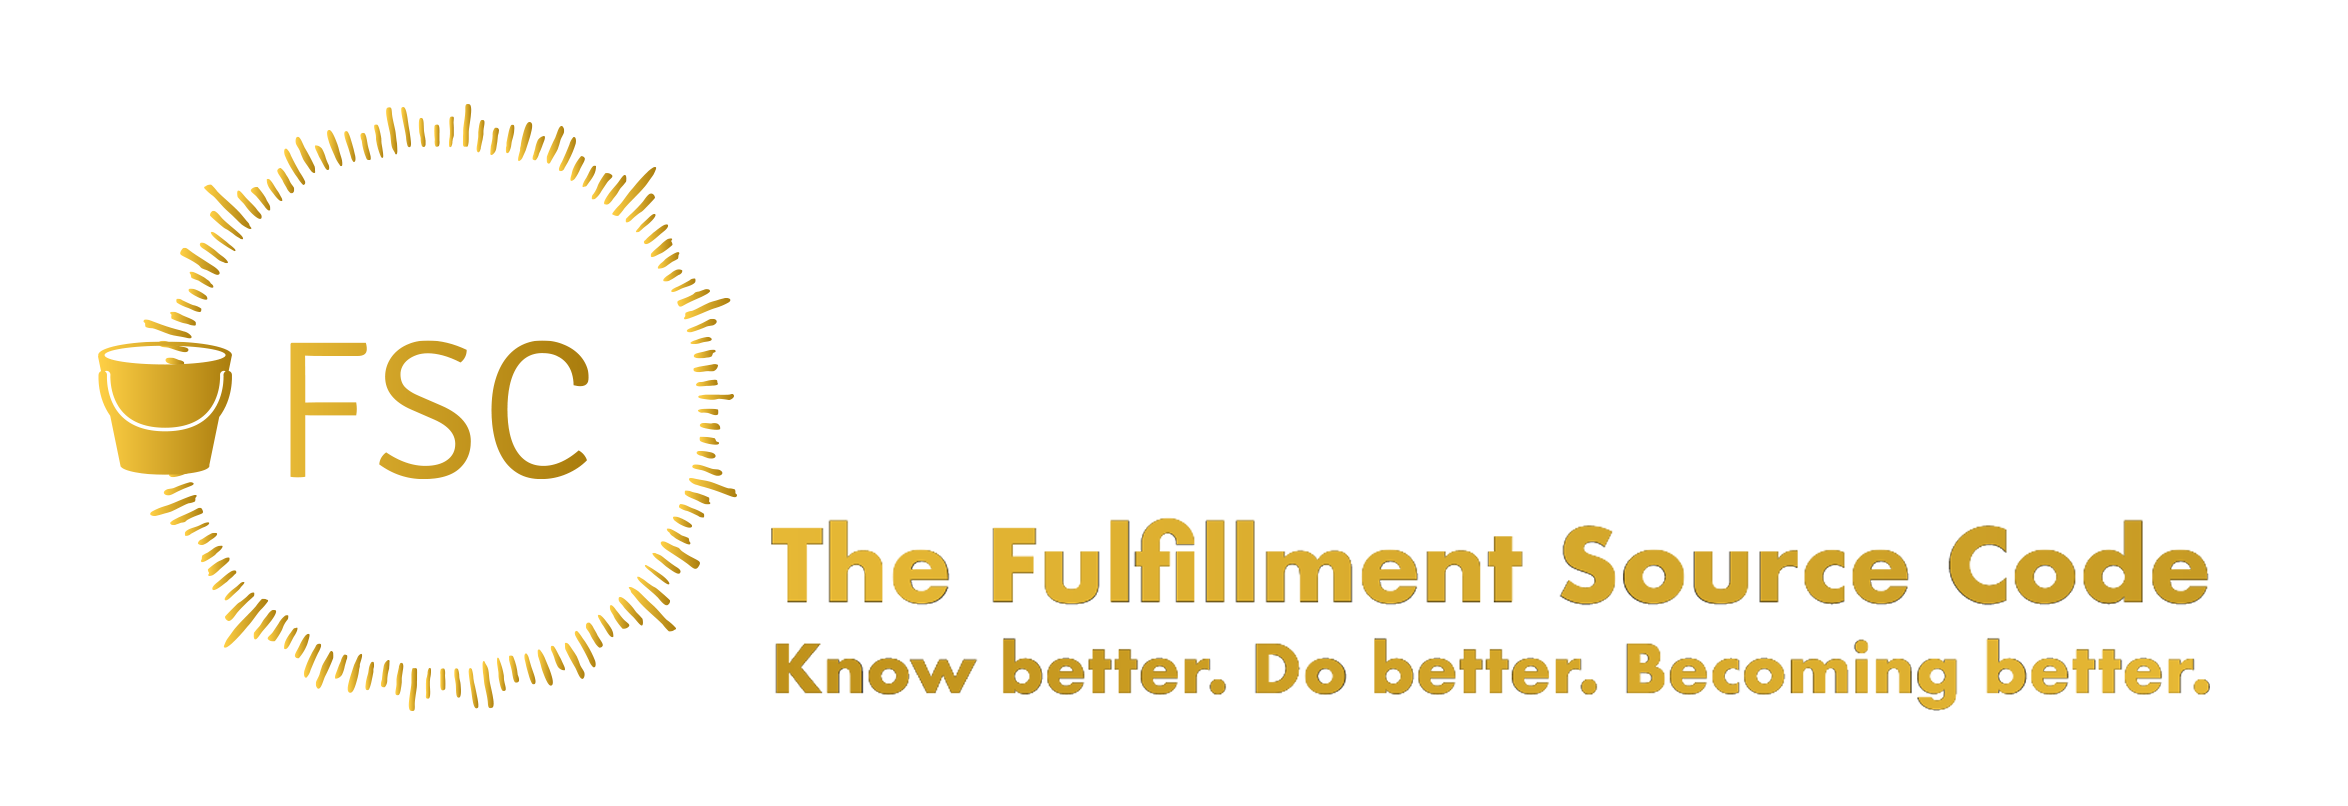 This is the Fulfillment Source Code's Logo and Wordmark. It says The Fulfillment Source Code Know Better. Do Better. Becoming Better.